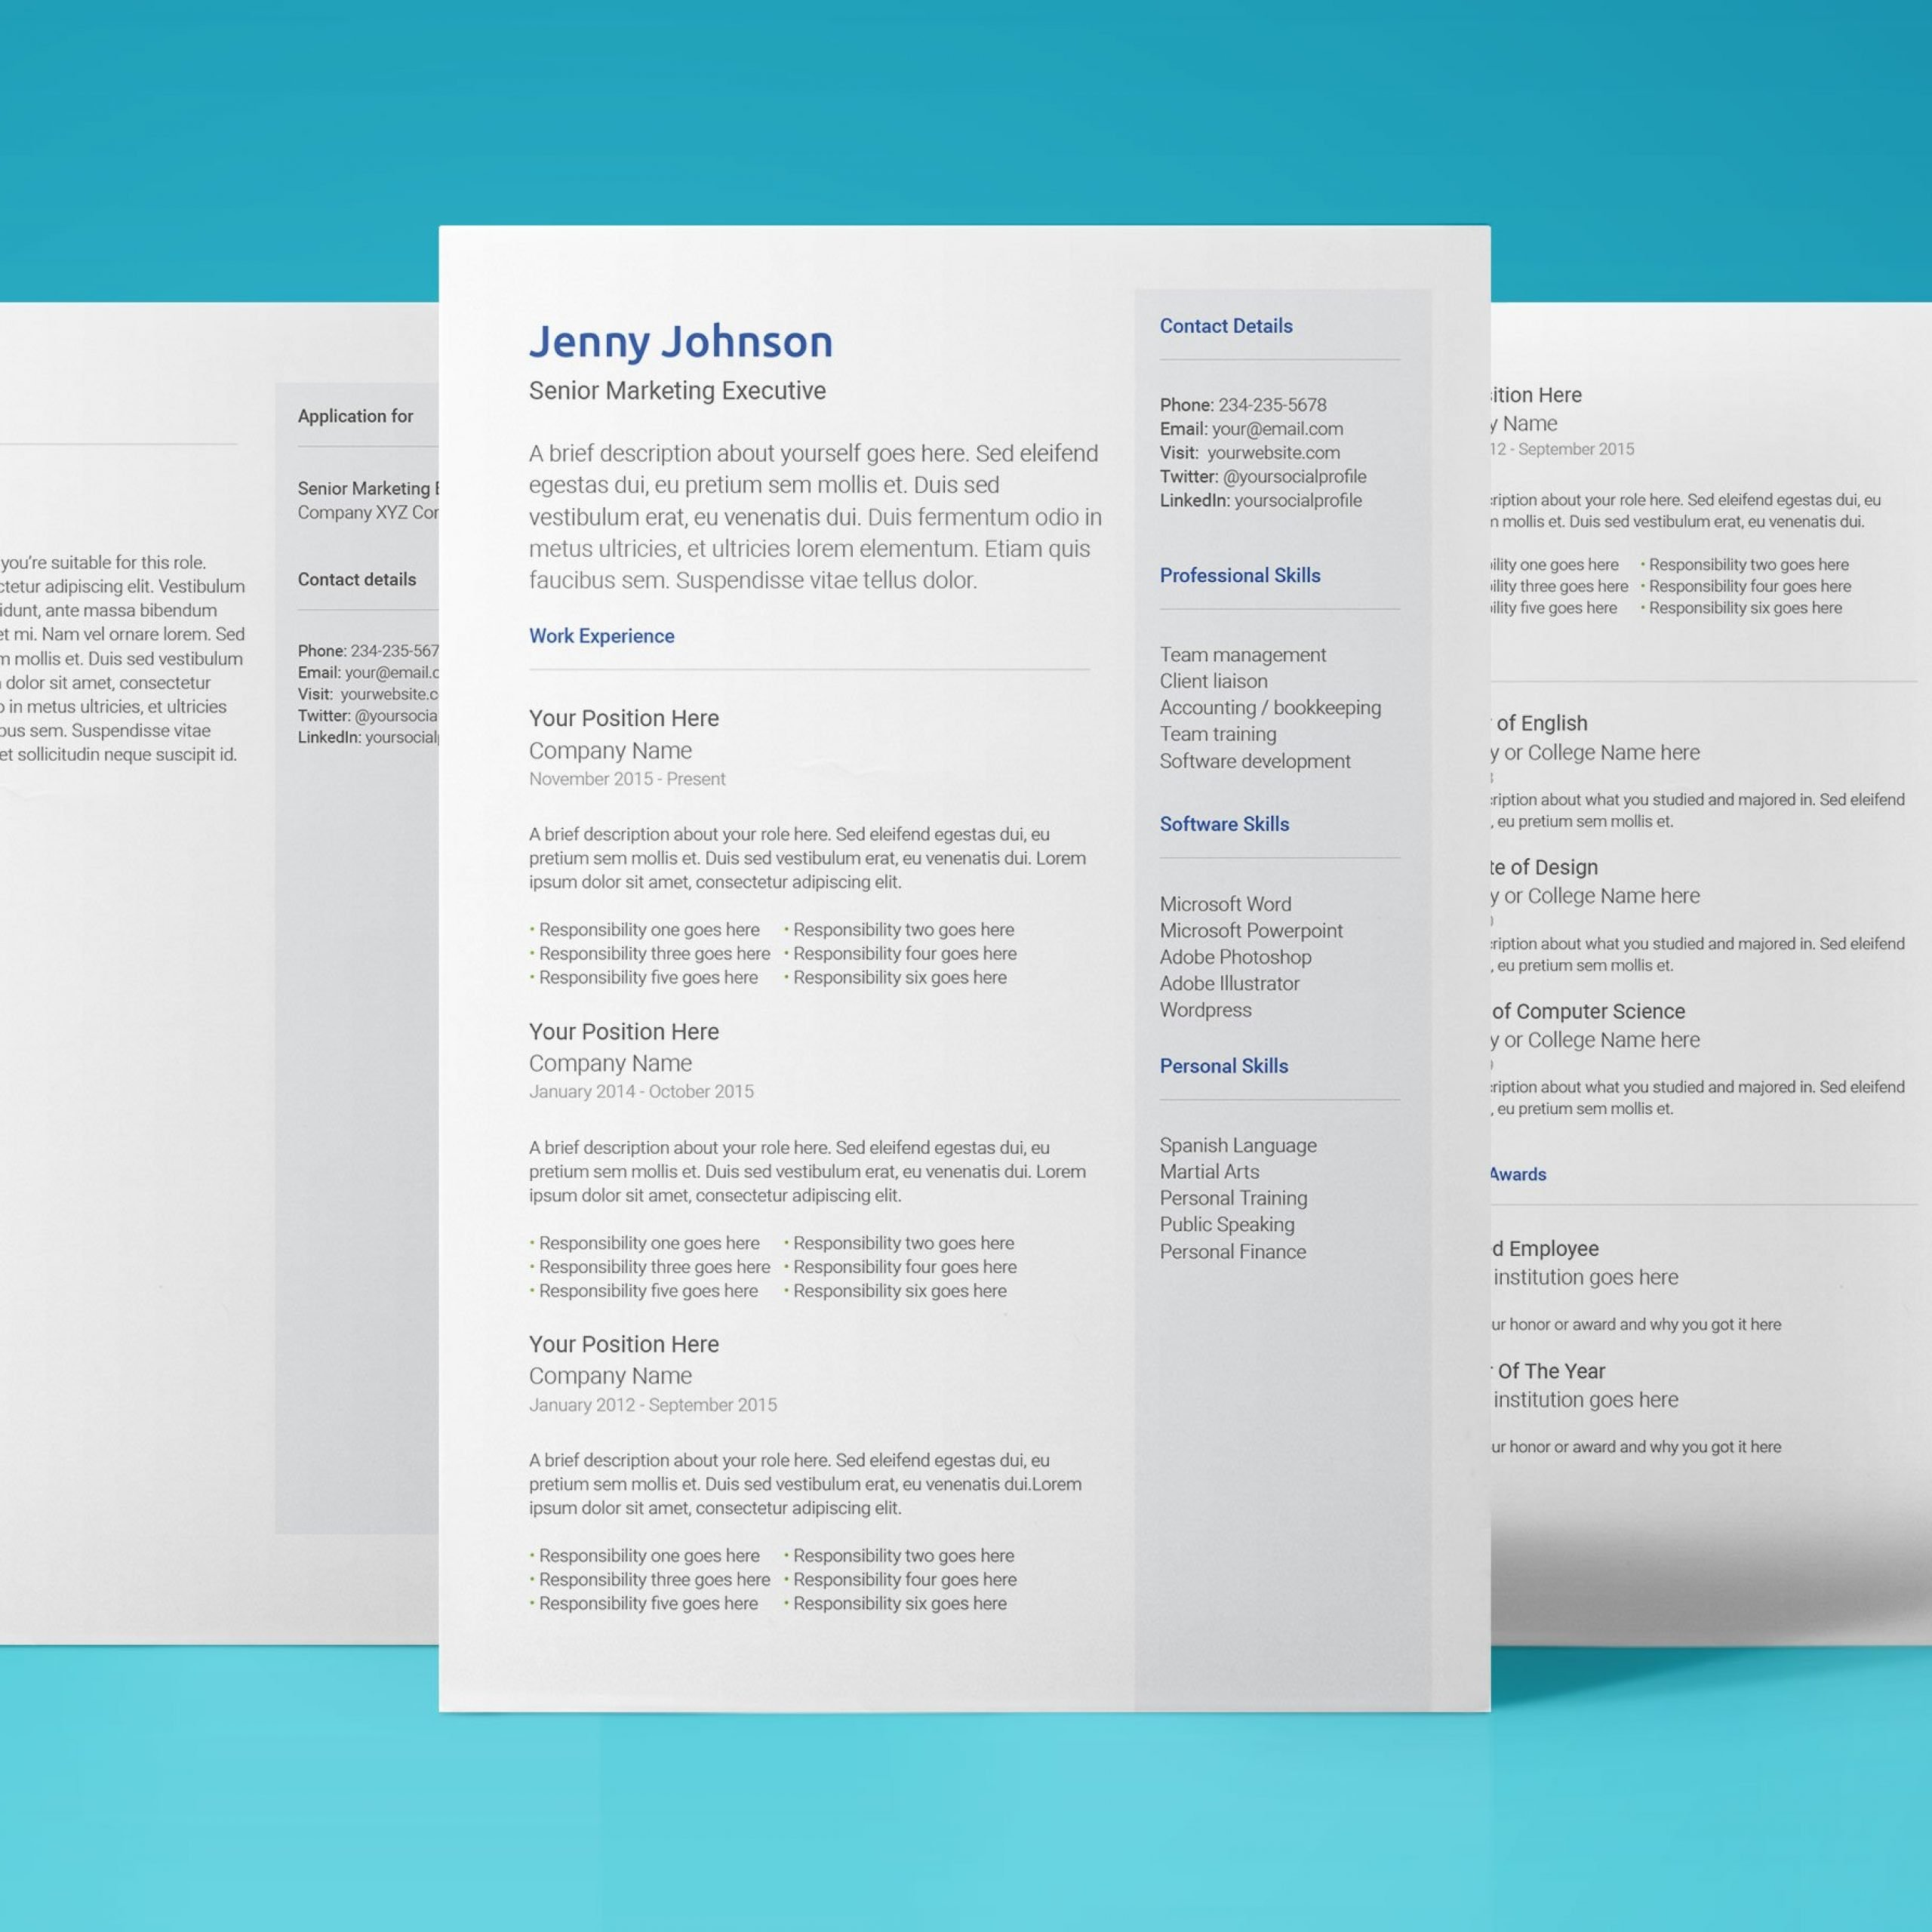 free google docs resume template use upresume templates drive neptune cv scaled entry Resume Free Google Drive Resume Templates